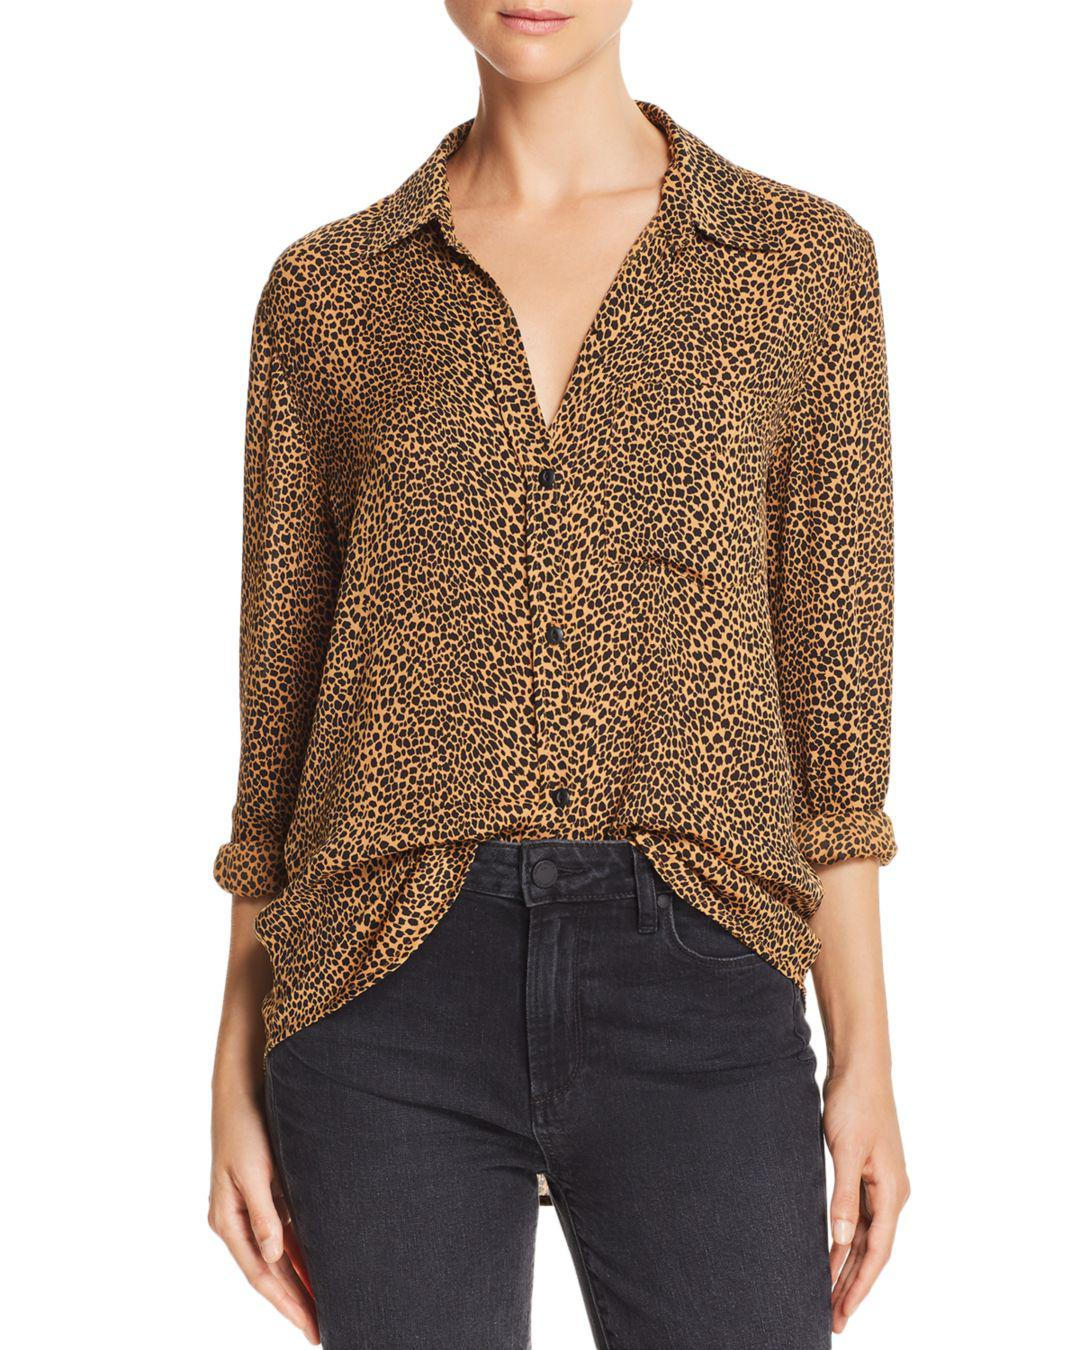 e567120728ce67 Current/Elliott The Derby Leopard Print Shirt in Brown - Lyst